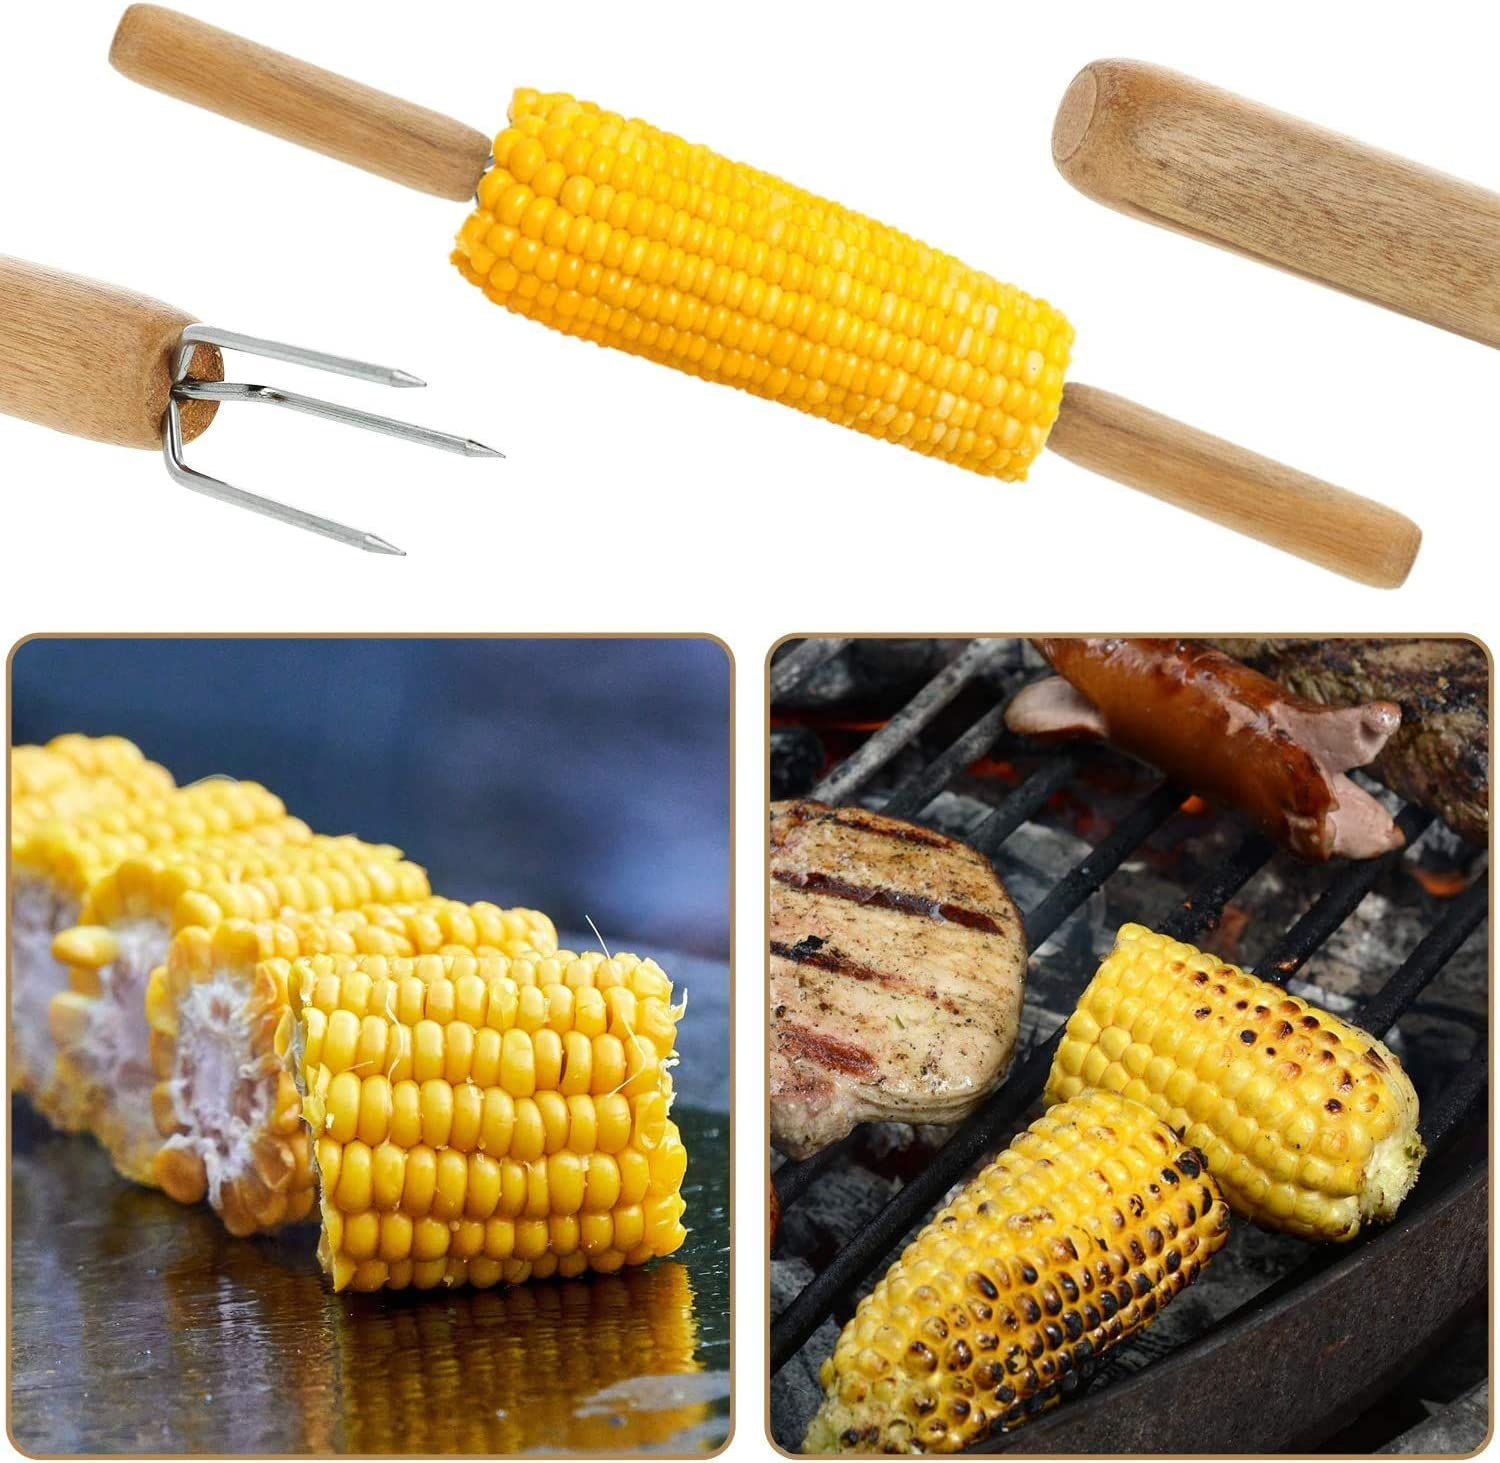 BETOY Corn Holders 10 Corn on The Cob Skewers for Skewers BBQ BBQ Corn Insert Prong Sweetcorn Holder Fork Kitchen Tool